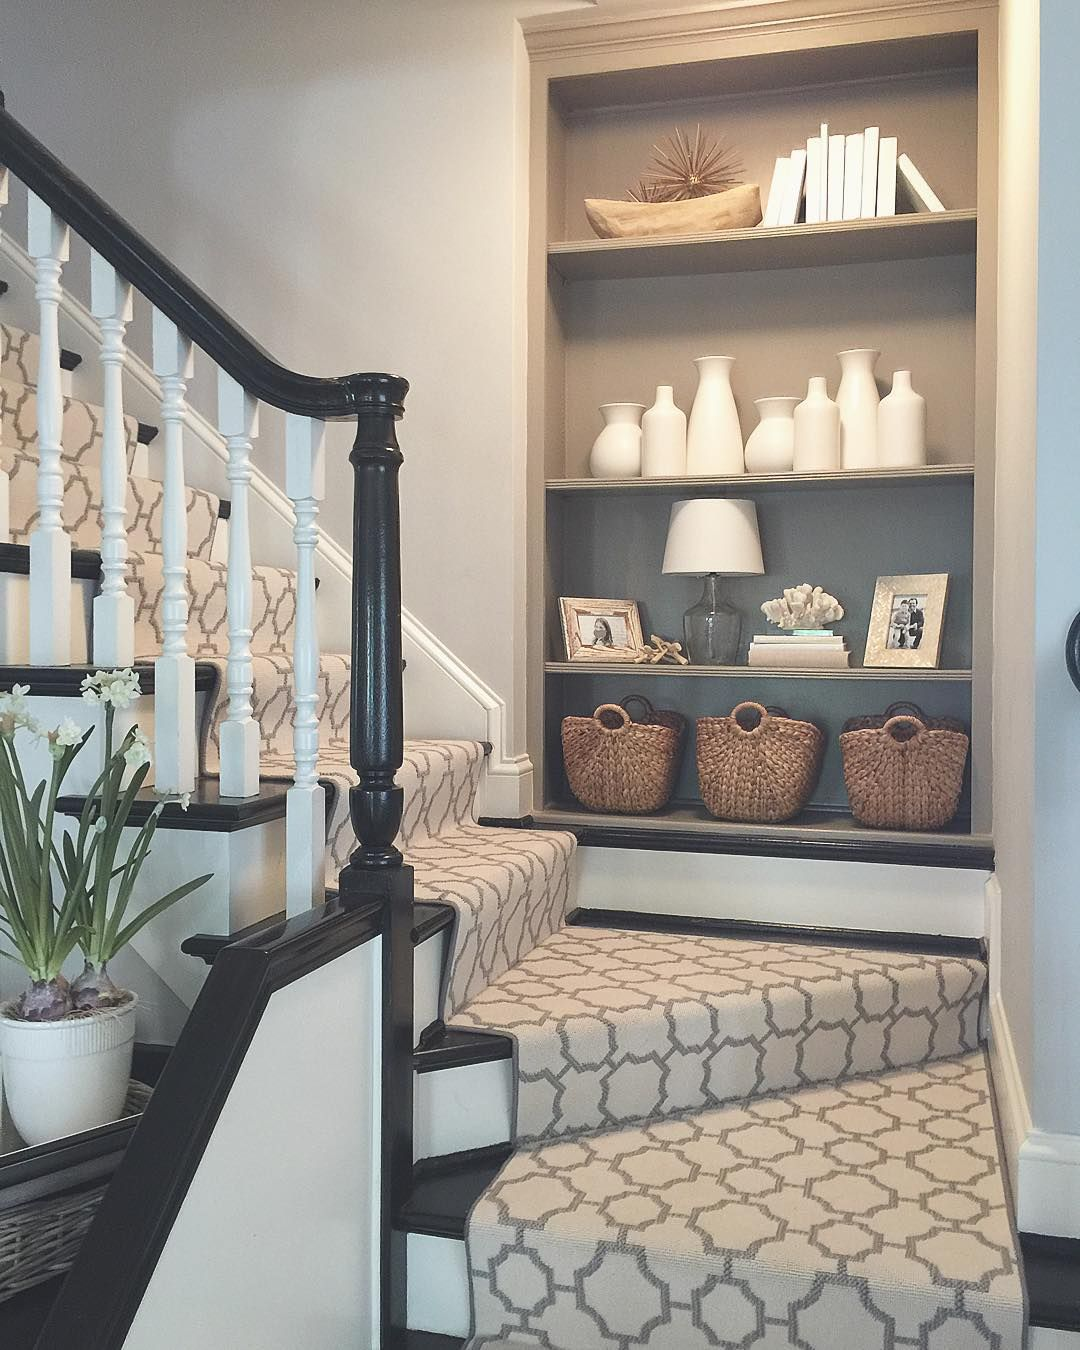 Kitchen Upstairs: This Is Probably One Of My Most Favorite Areas In Our Home